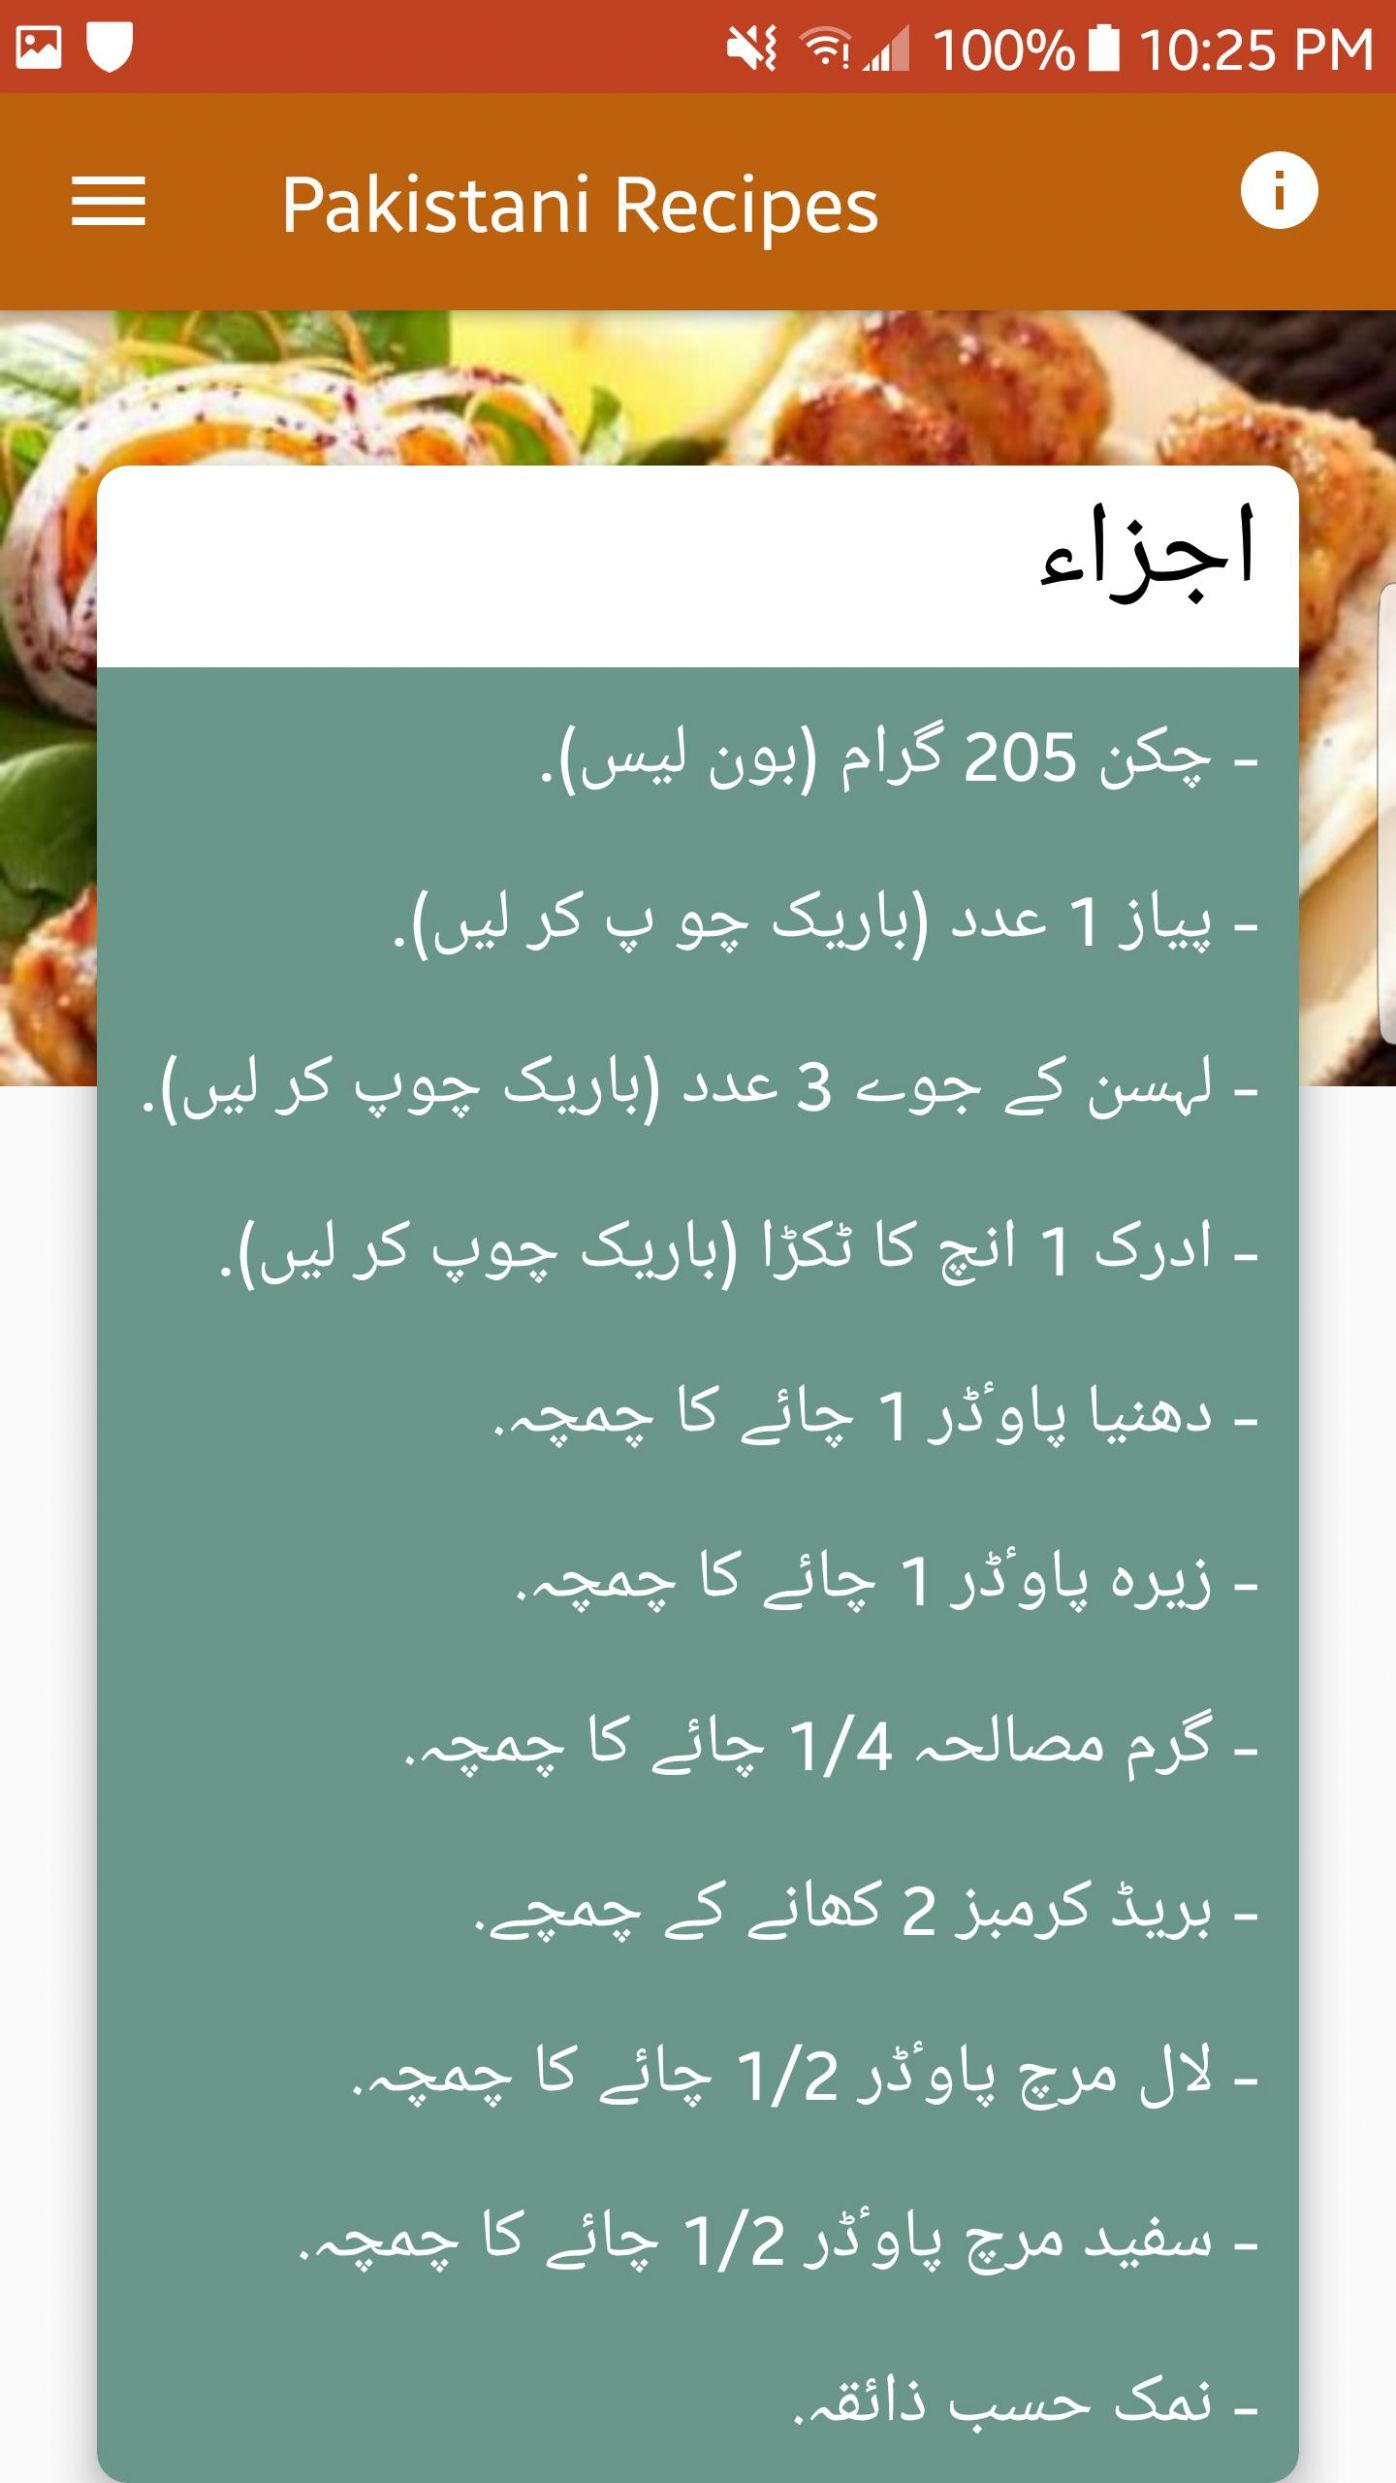 Pakistani Food Recipes in Urdu - Offline für Android - APK ..